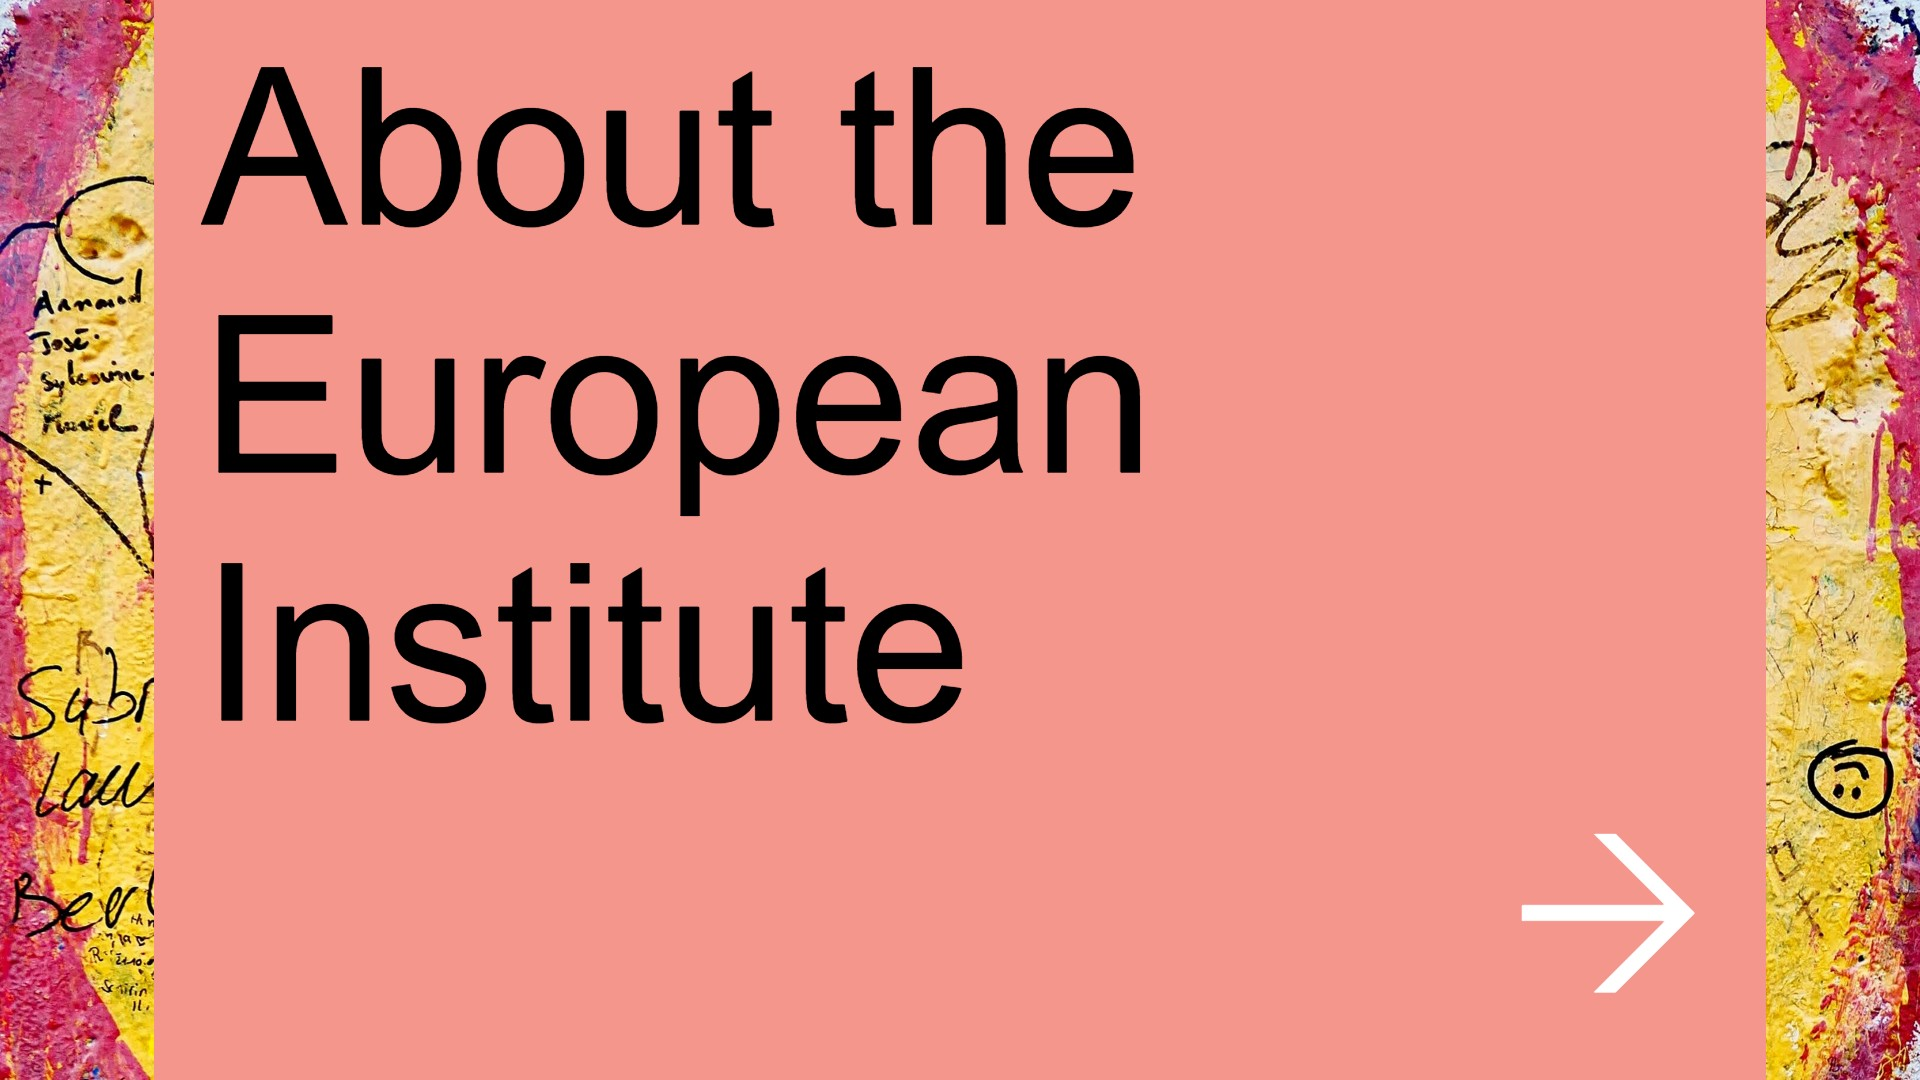 About the European Institute